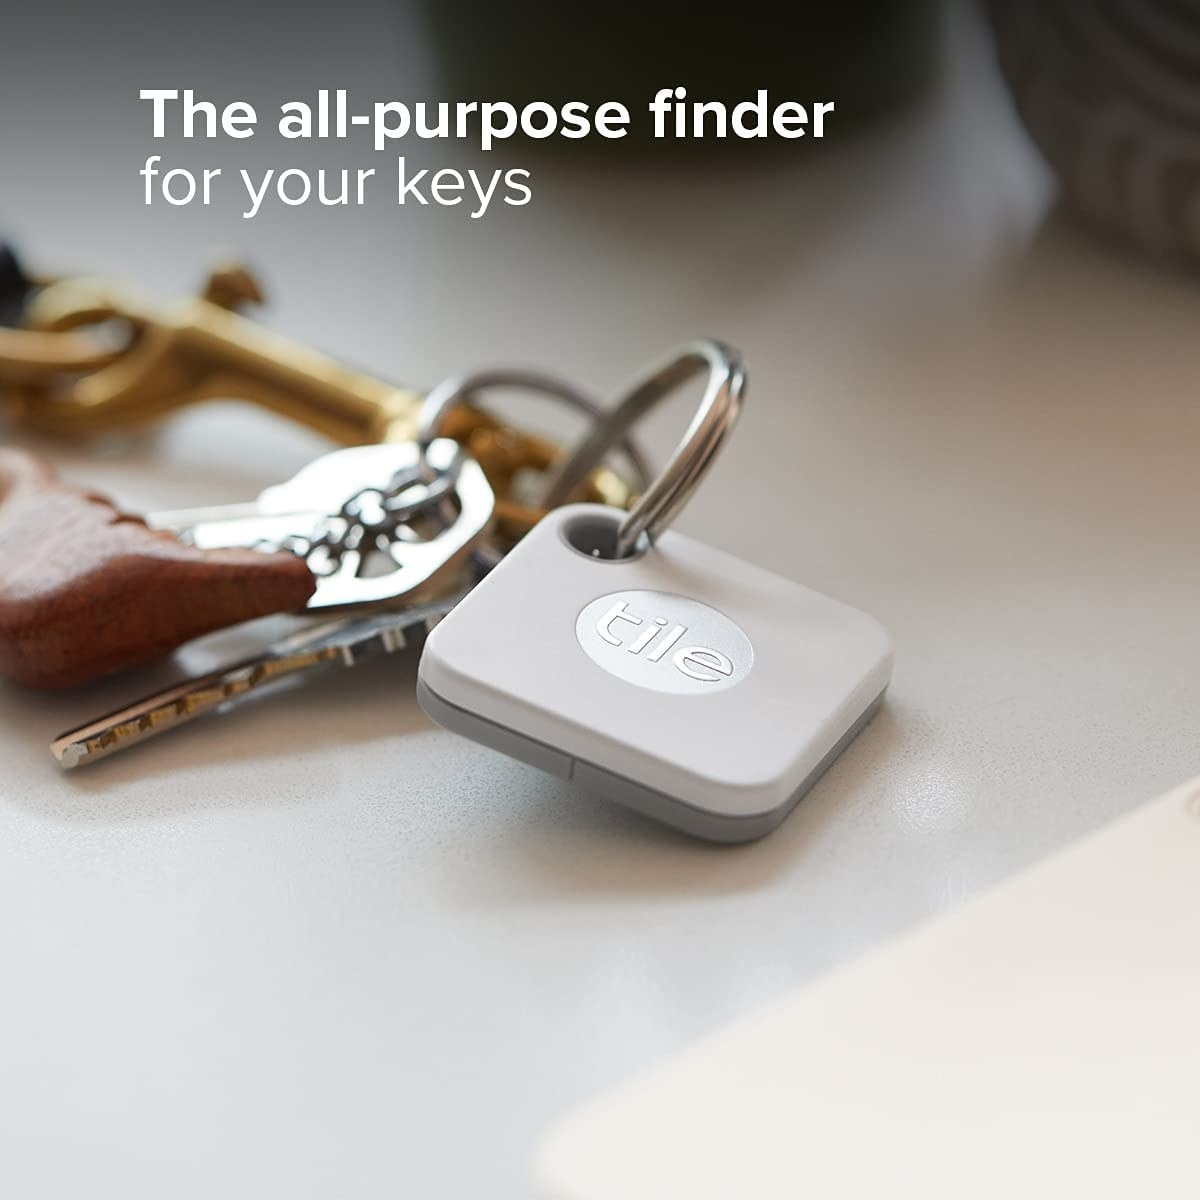 White square shaped tile keychain attached to keys